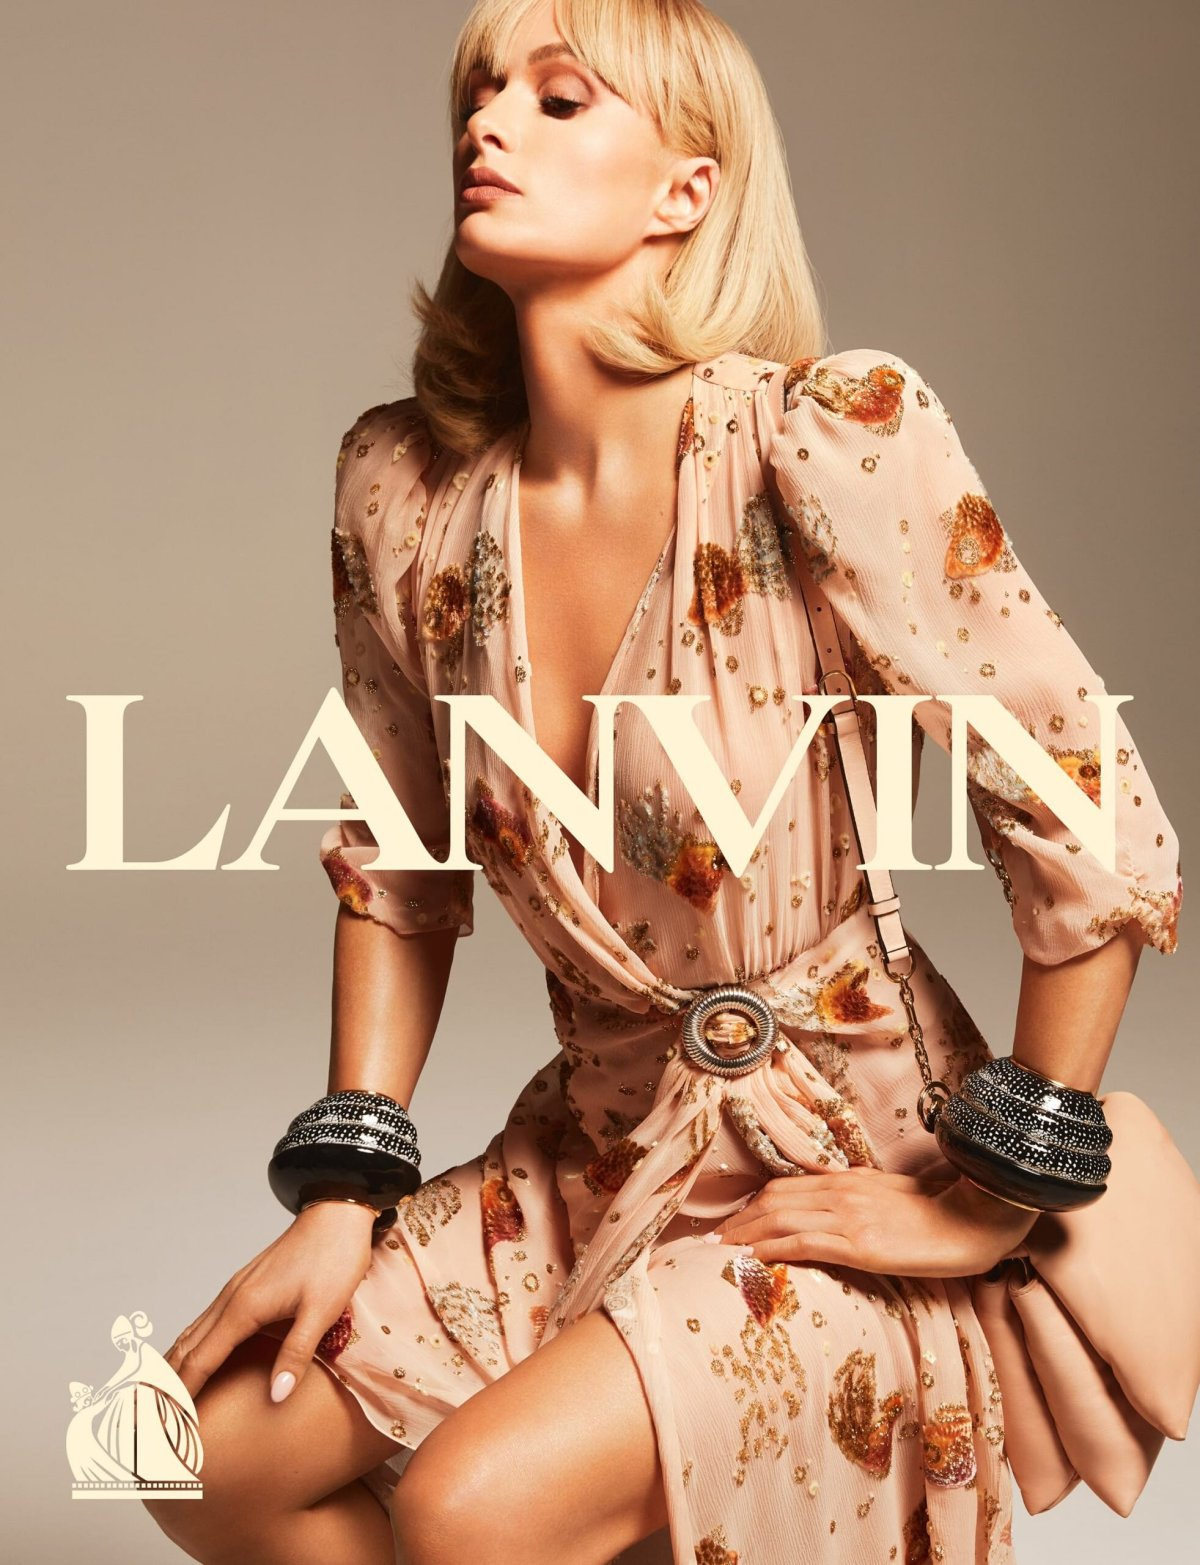 Paris Hilton for Lanvin Spring 2021 Campaign. Photographed by Mert & Marcus.